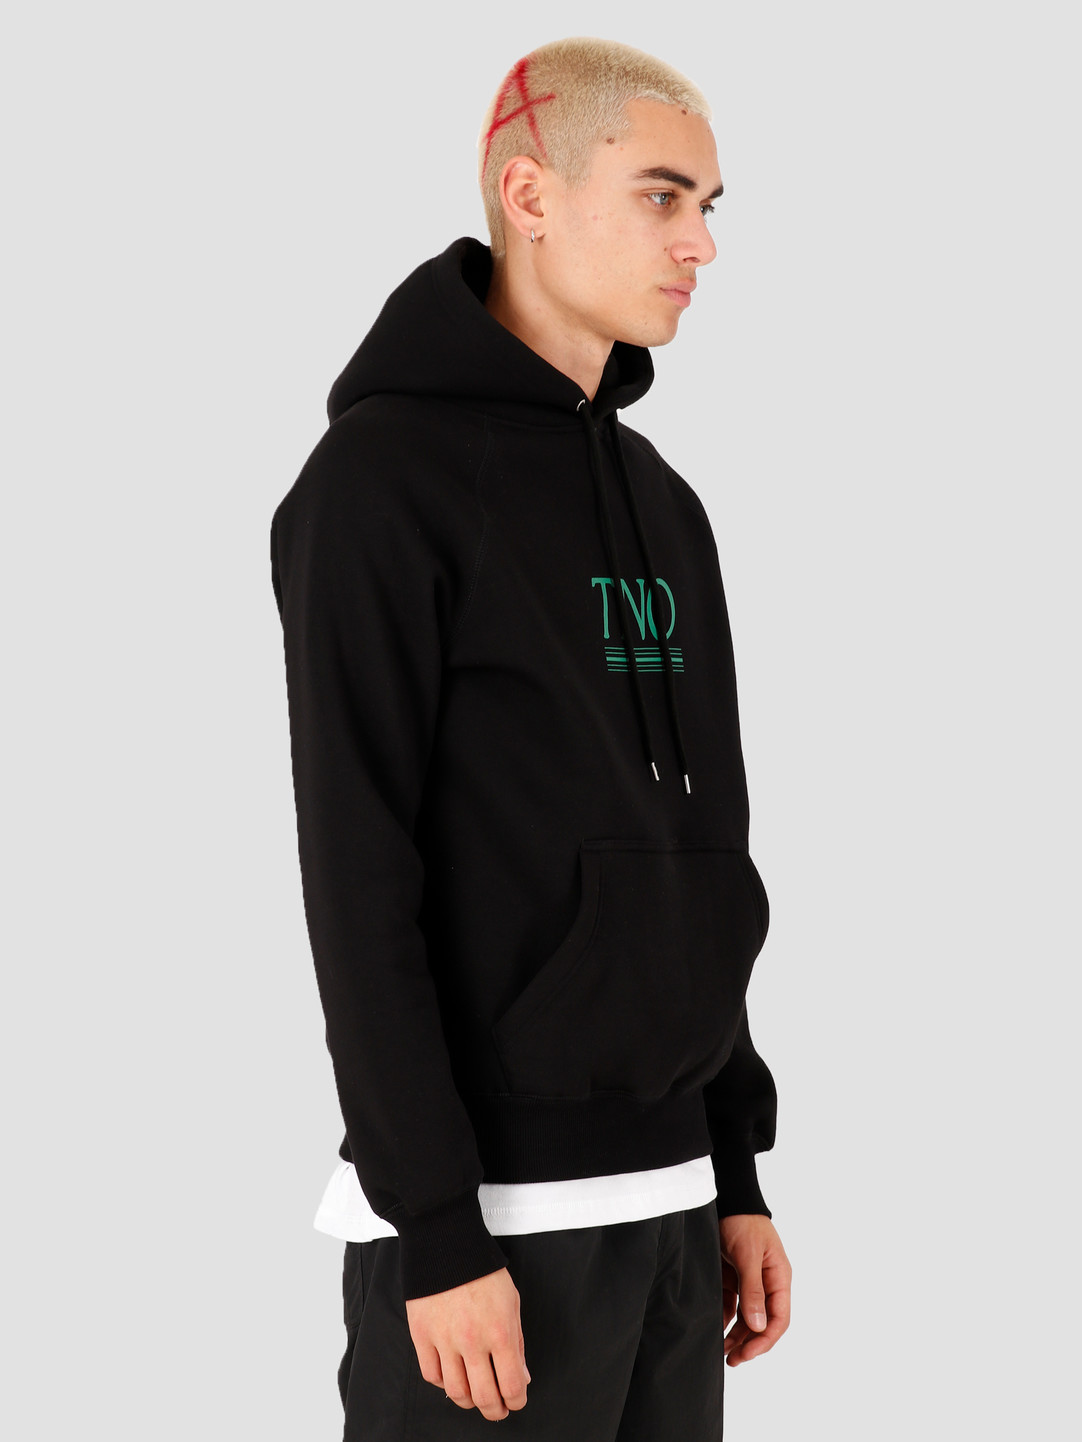 The New Originals The New Originals Underline Hoodie Black Green